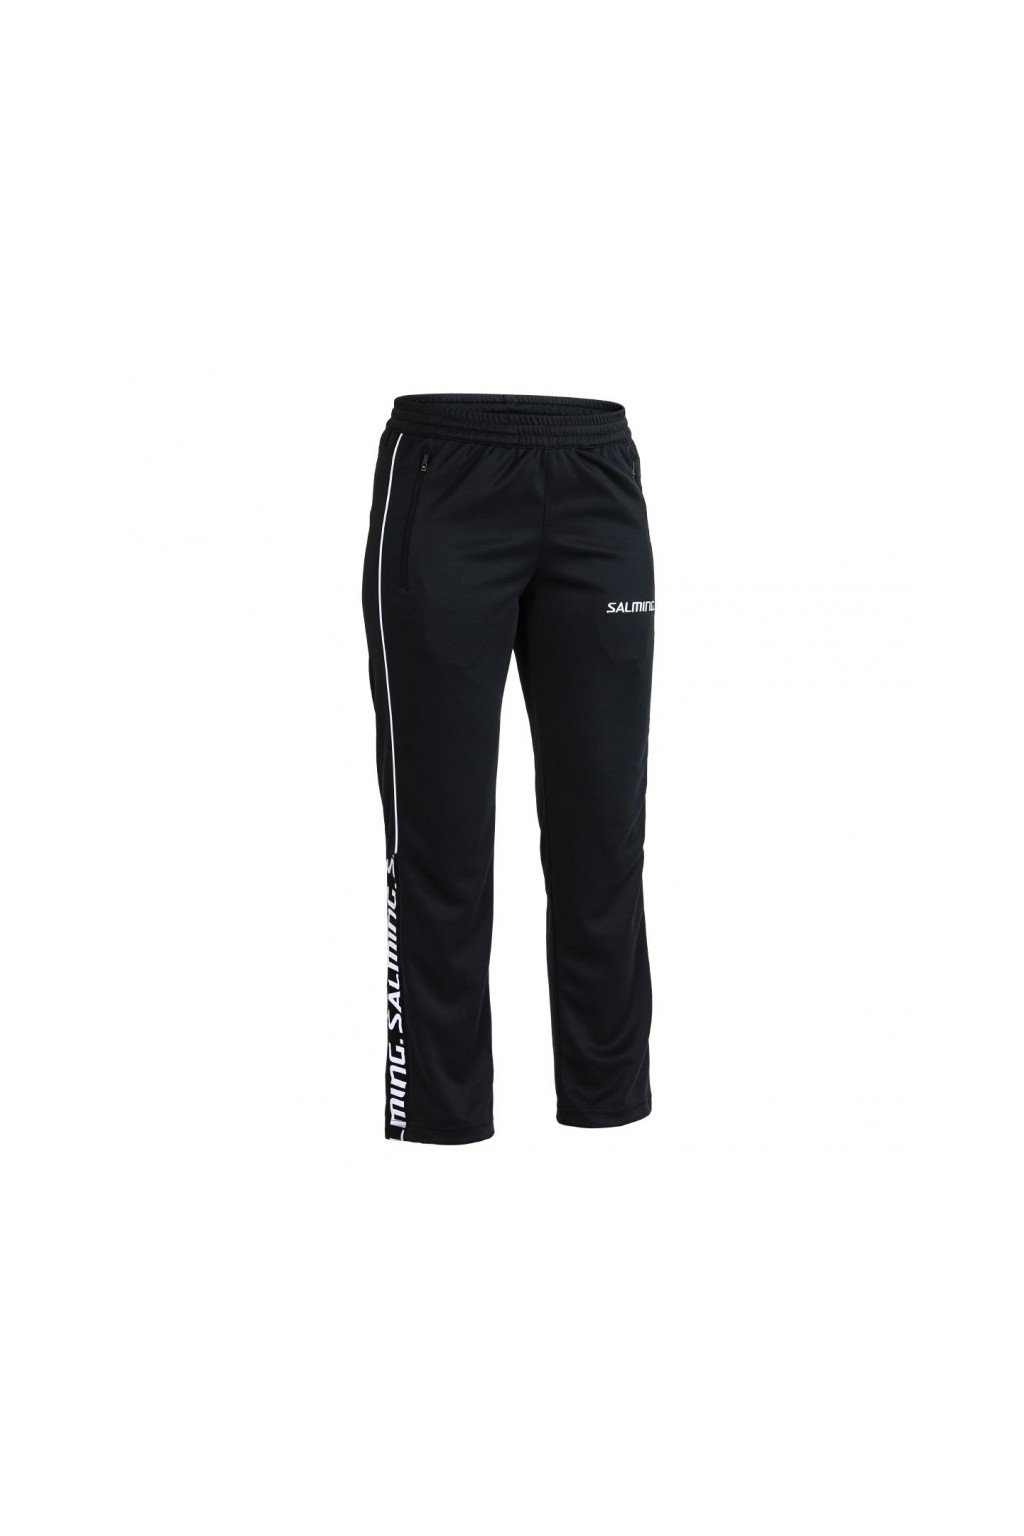 salming delta pant women black xxl